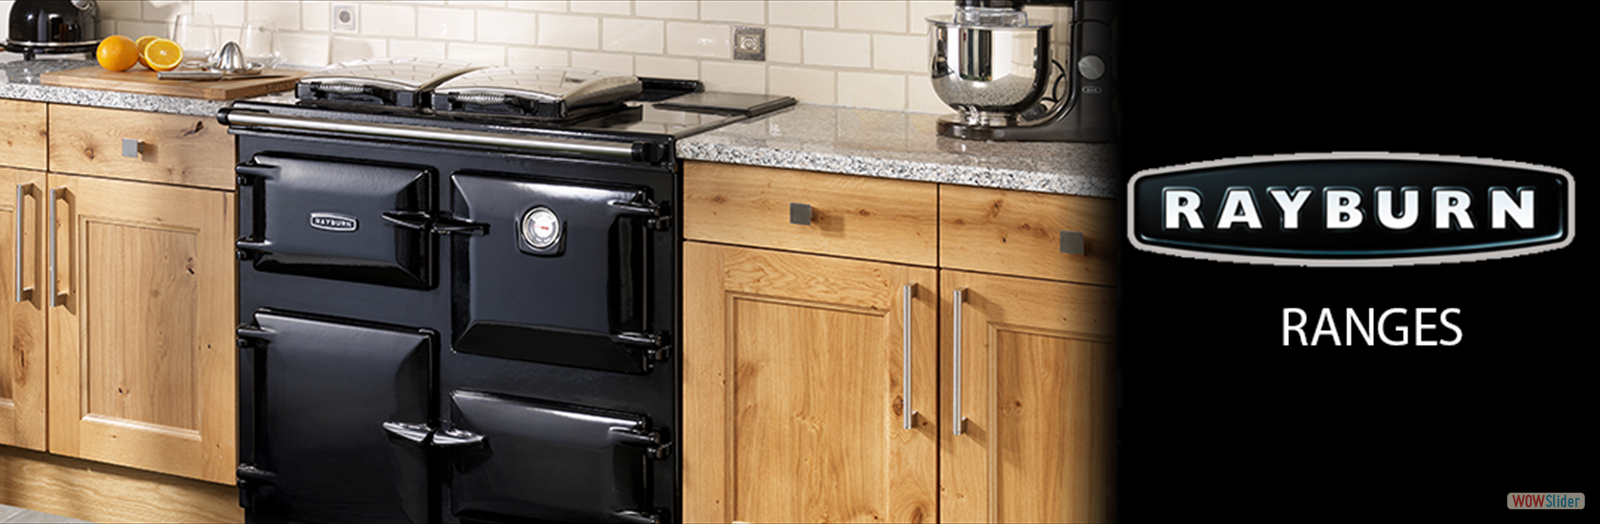 rayburn-400-blk-roomset